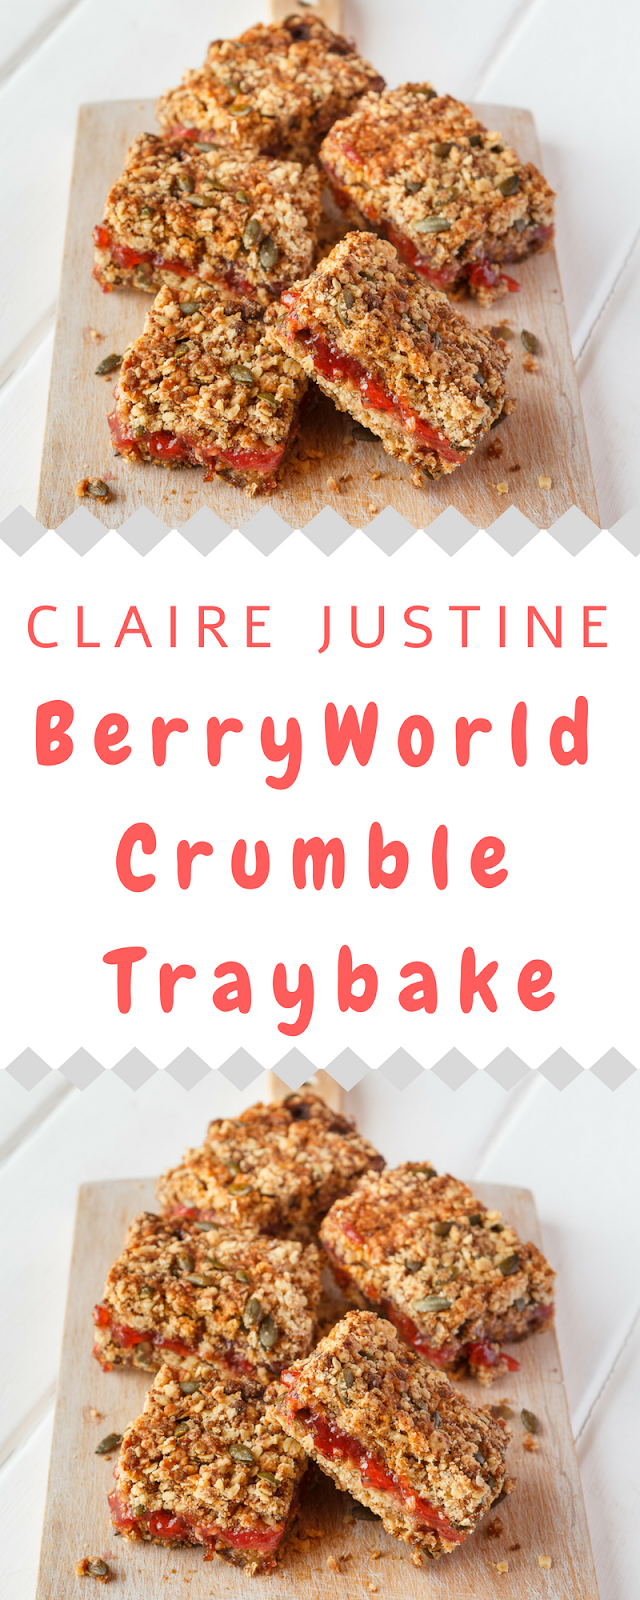 BerryWorld Crumble Traybake